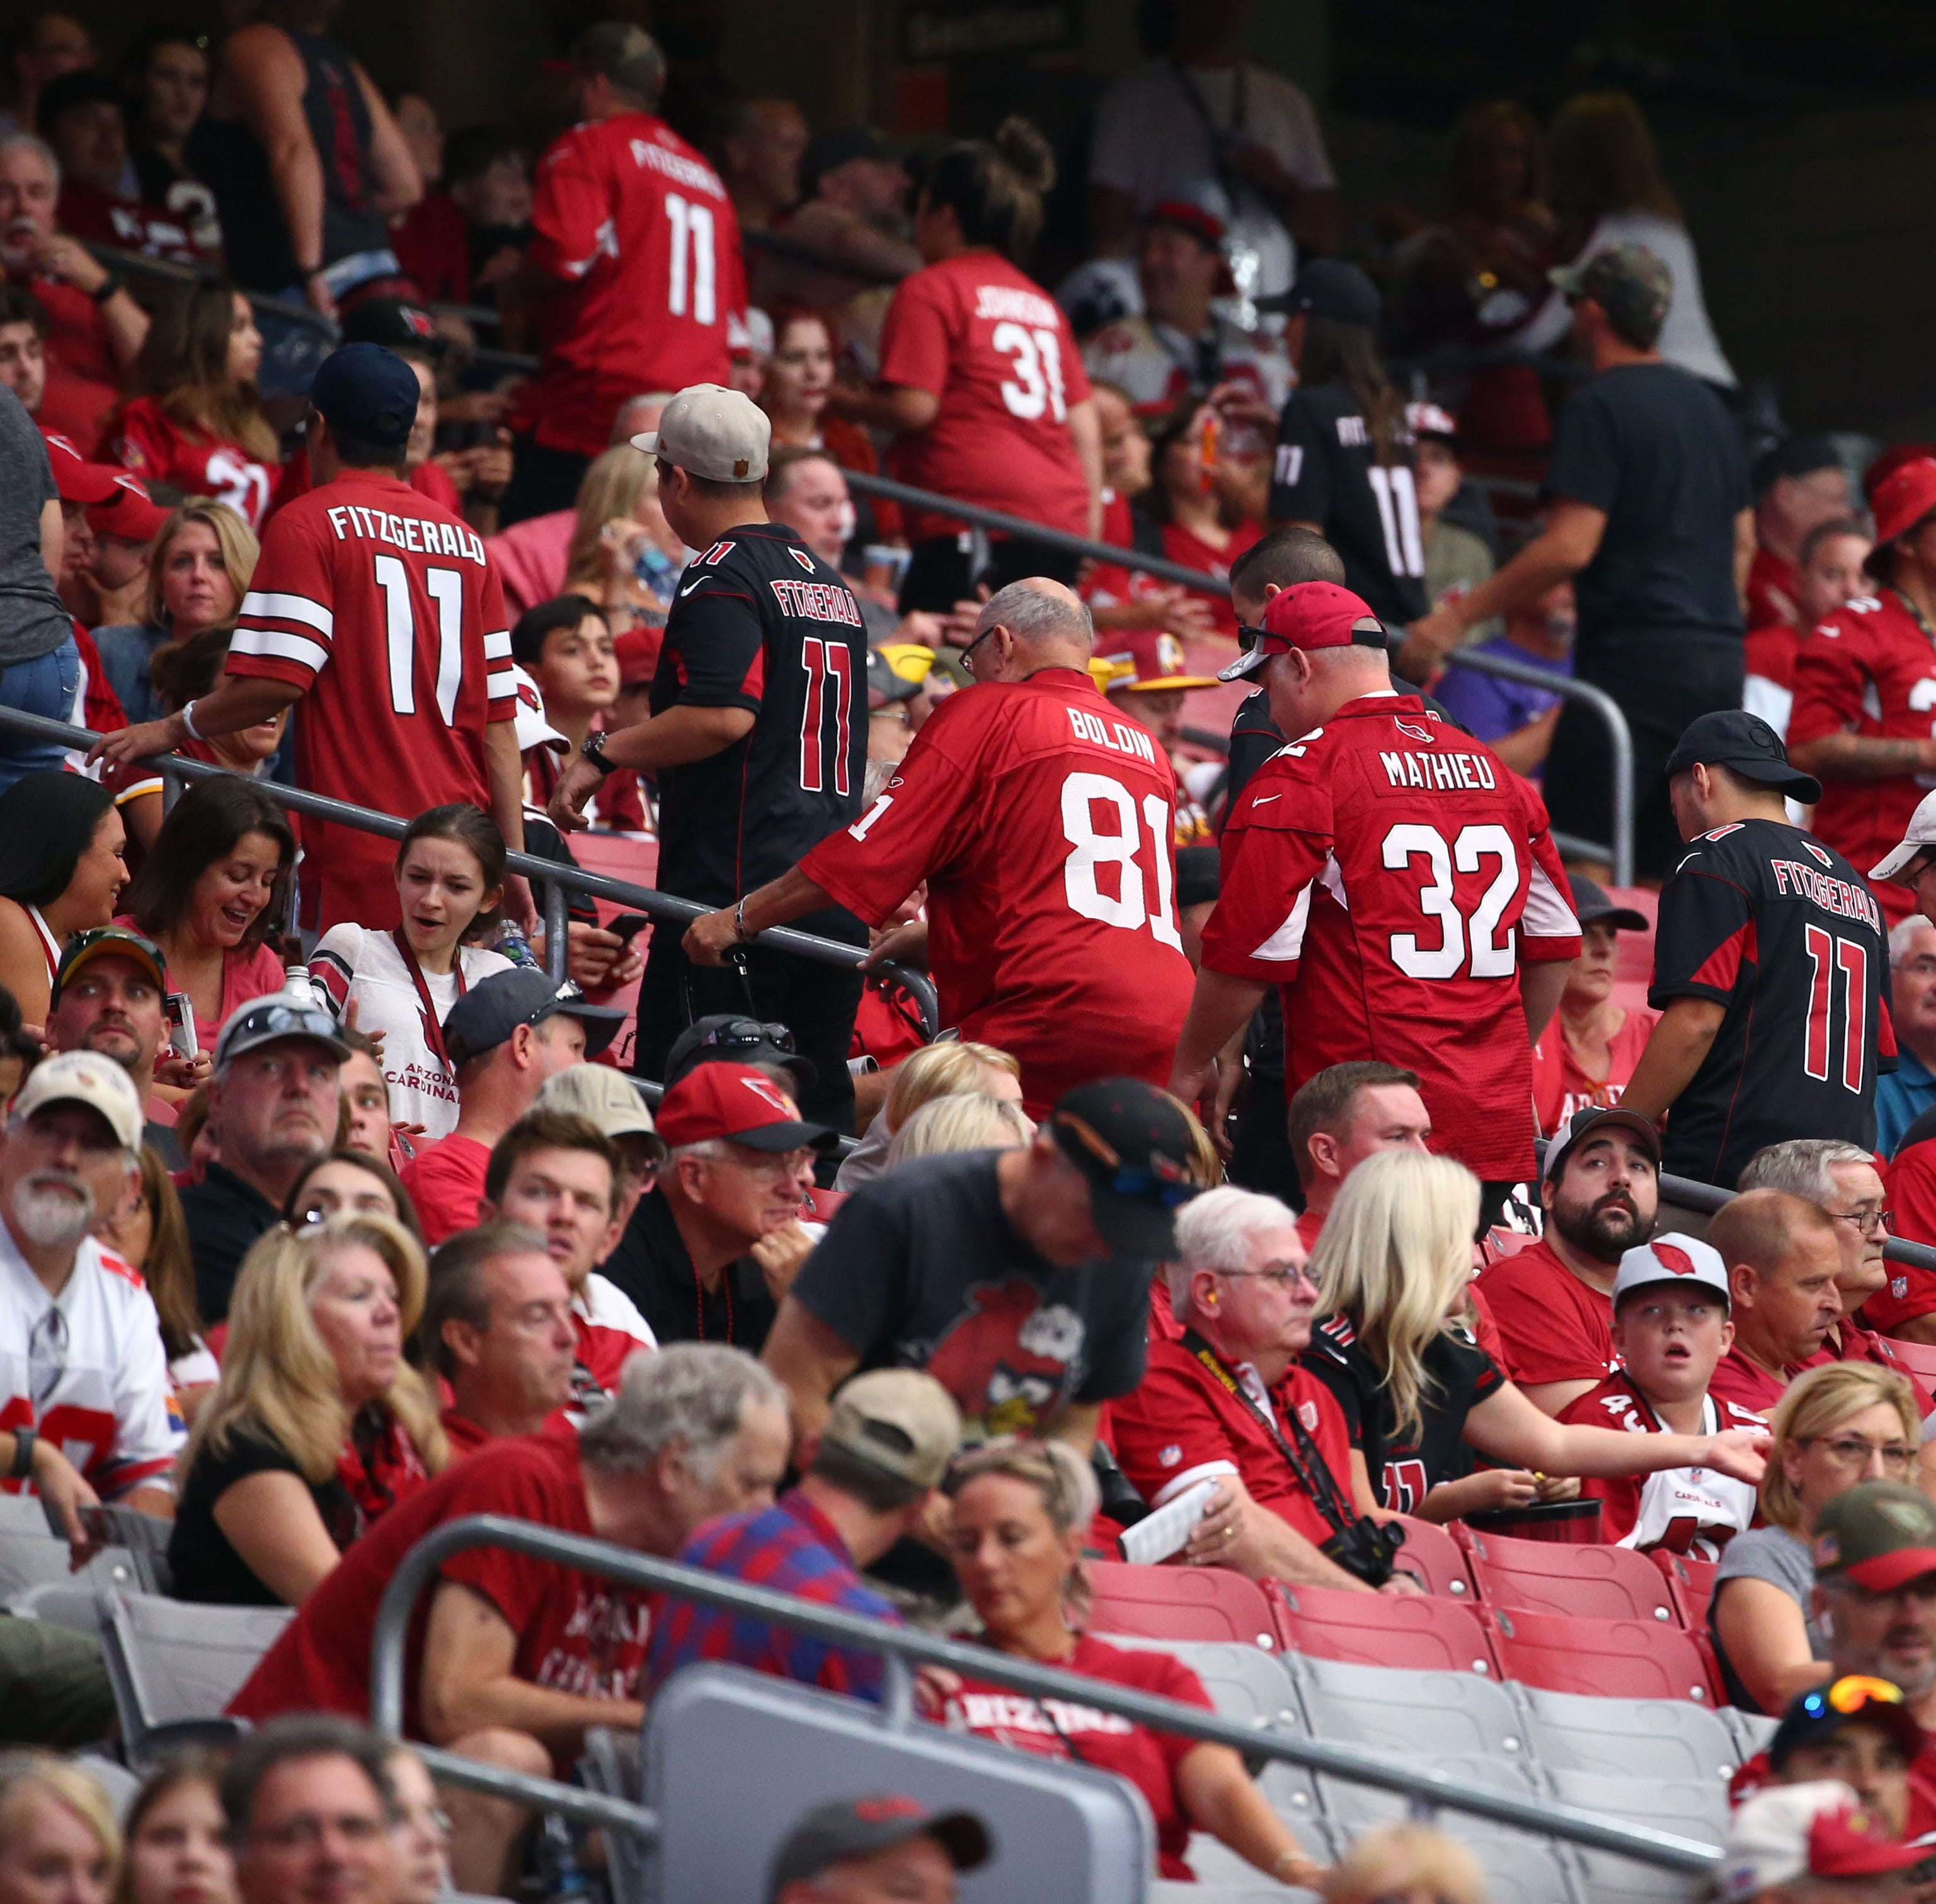 Artificial or real, Cardinals will hear boos again if they don't play better against Bears